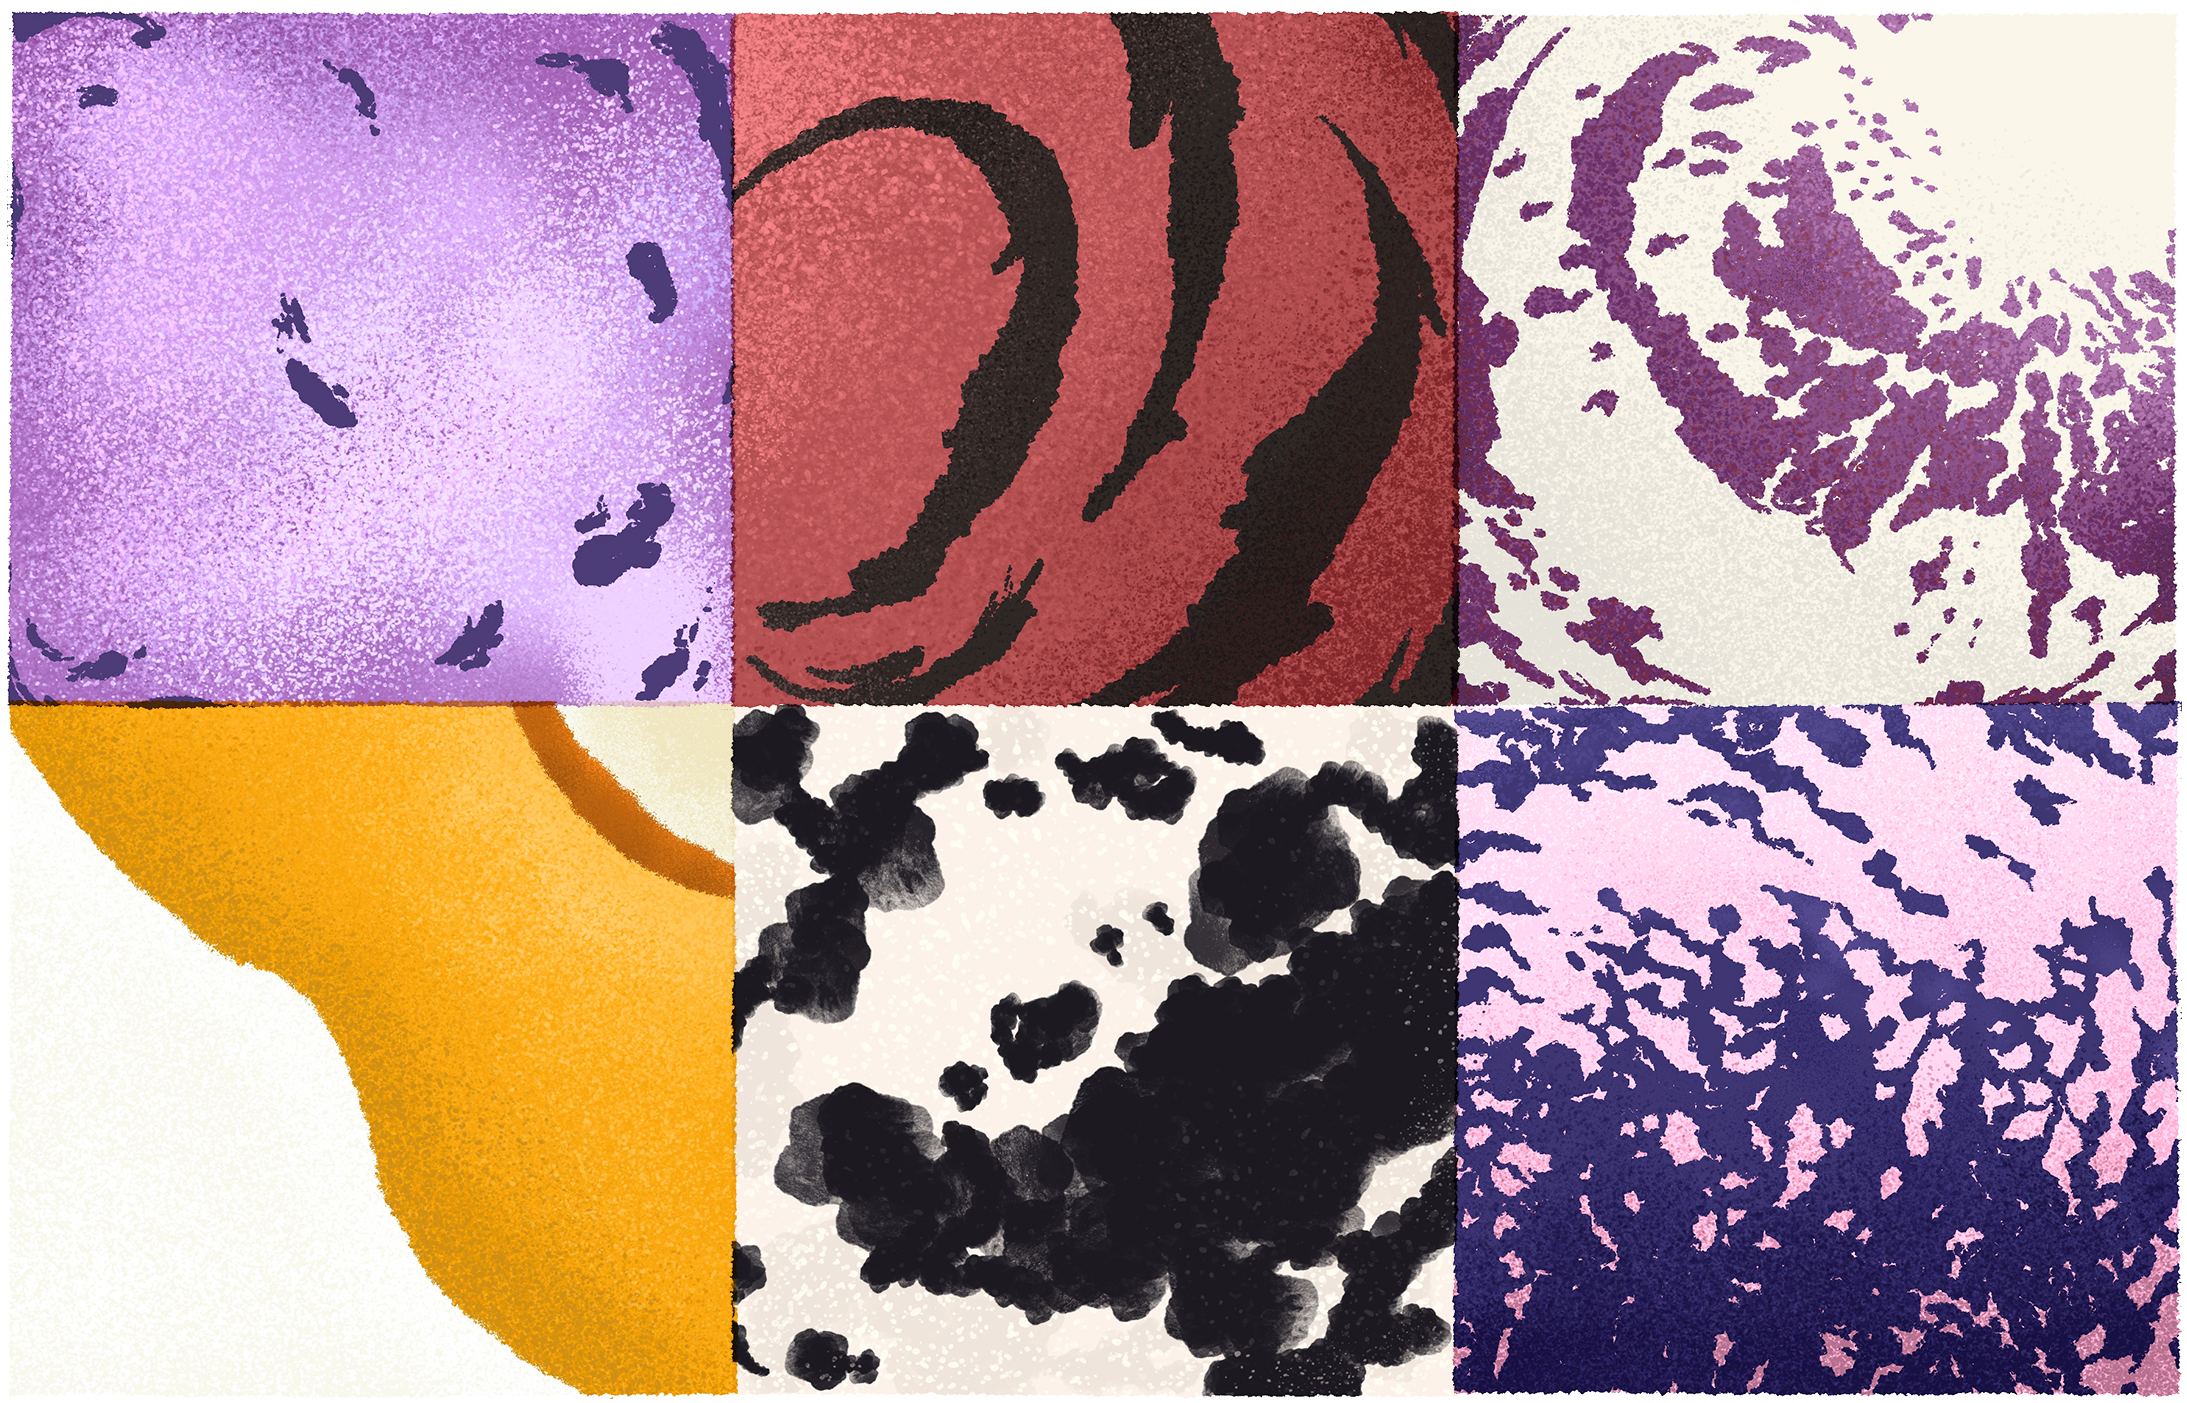 Two rows of three images that consist of different swirls and splotches.